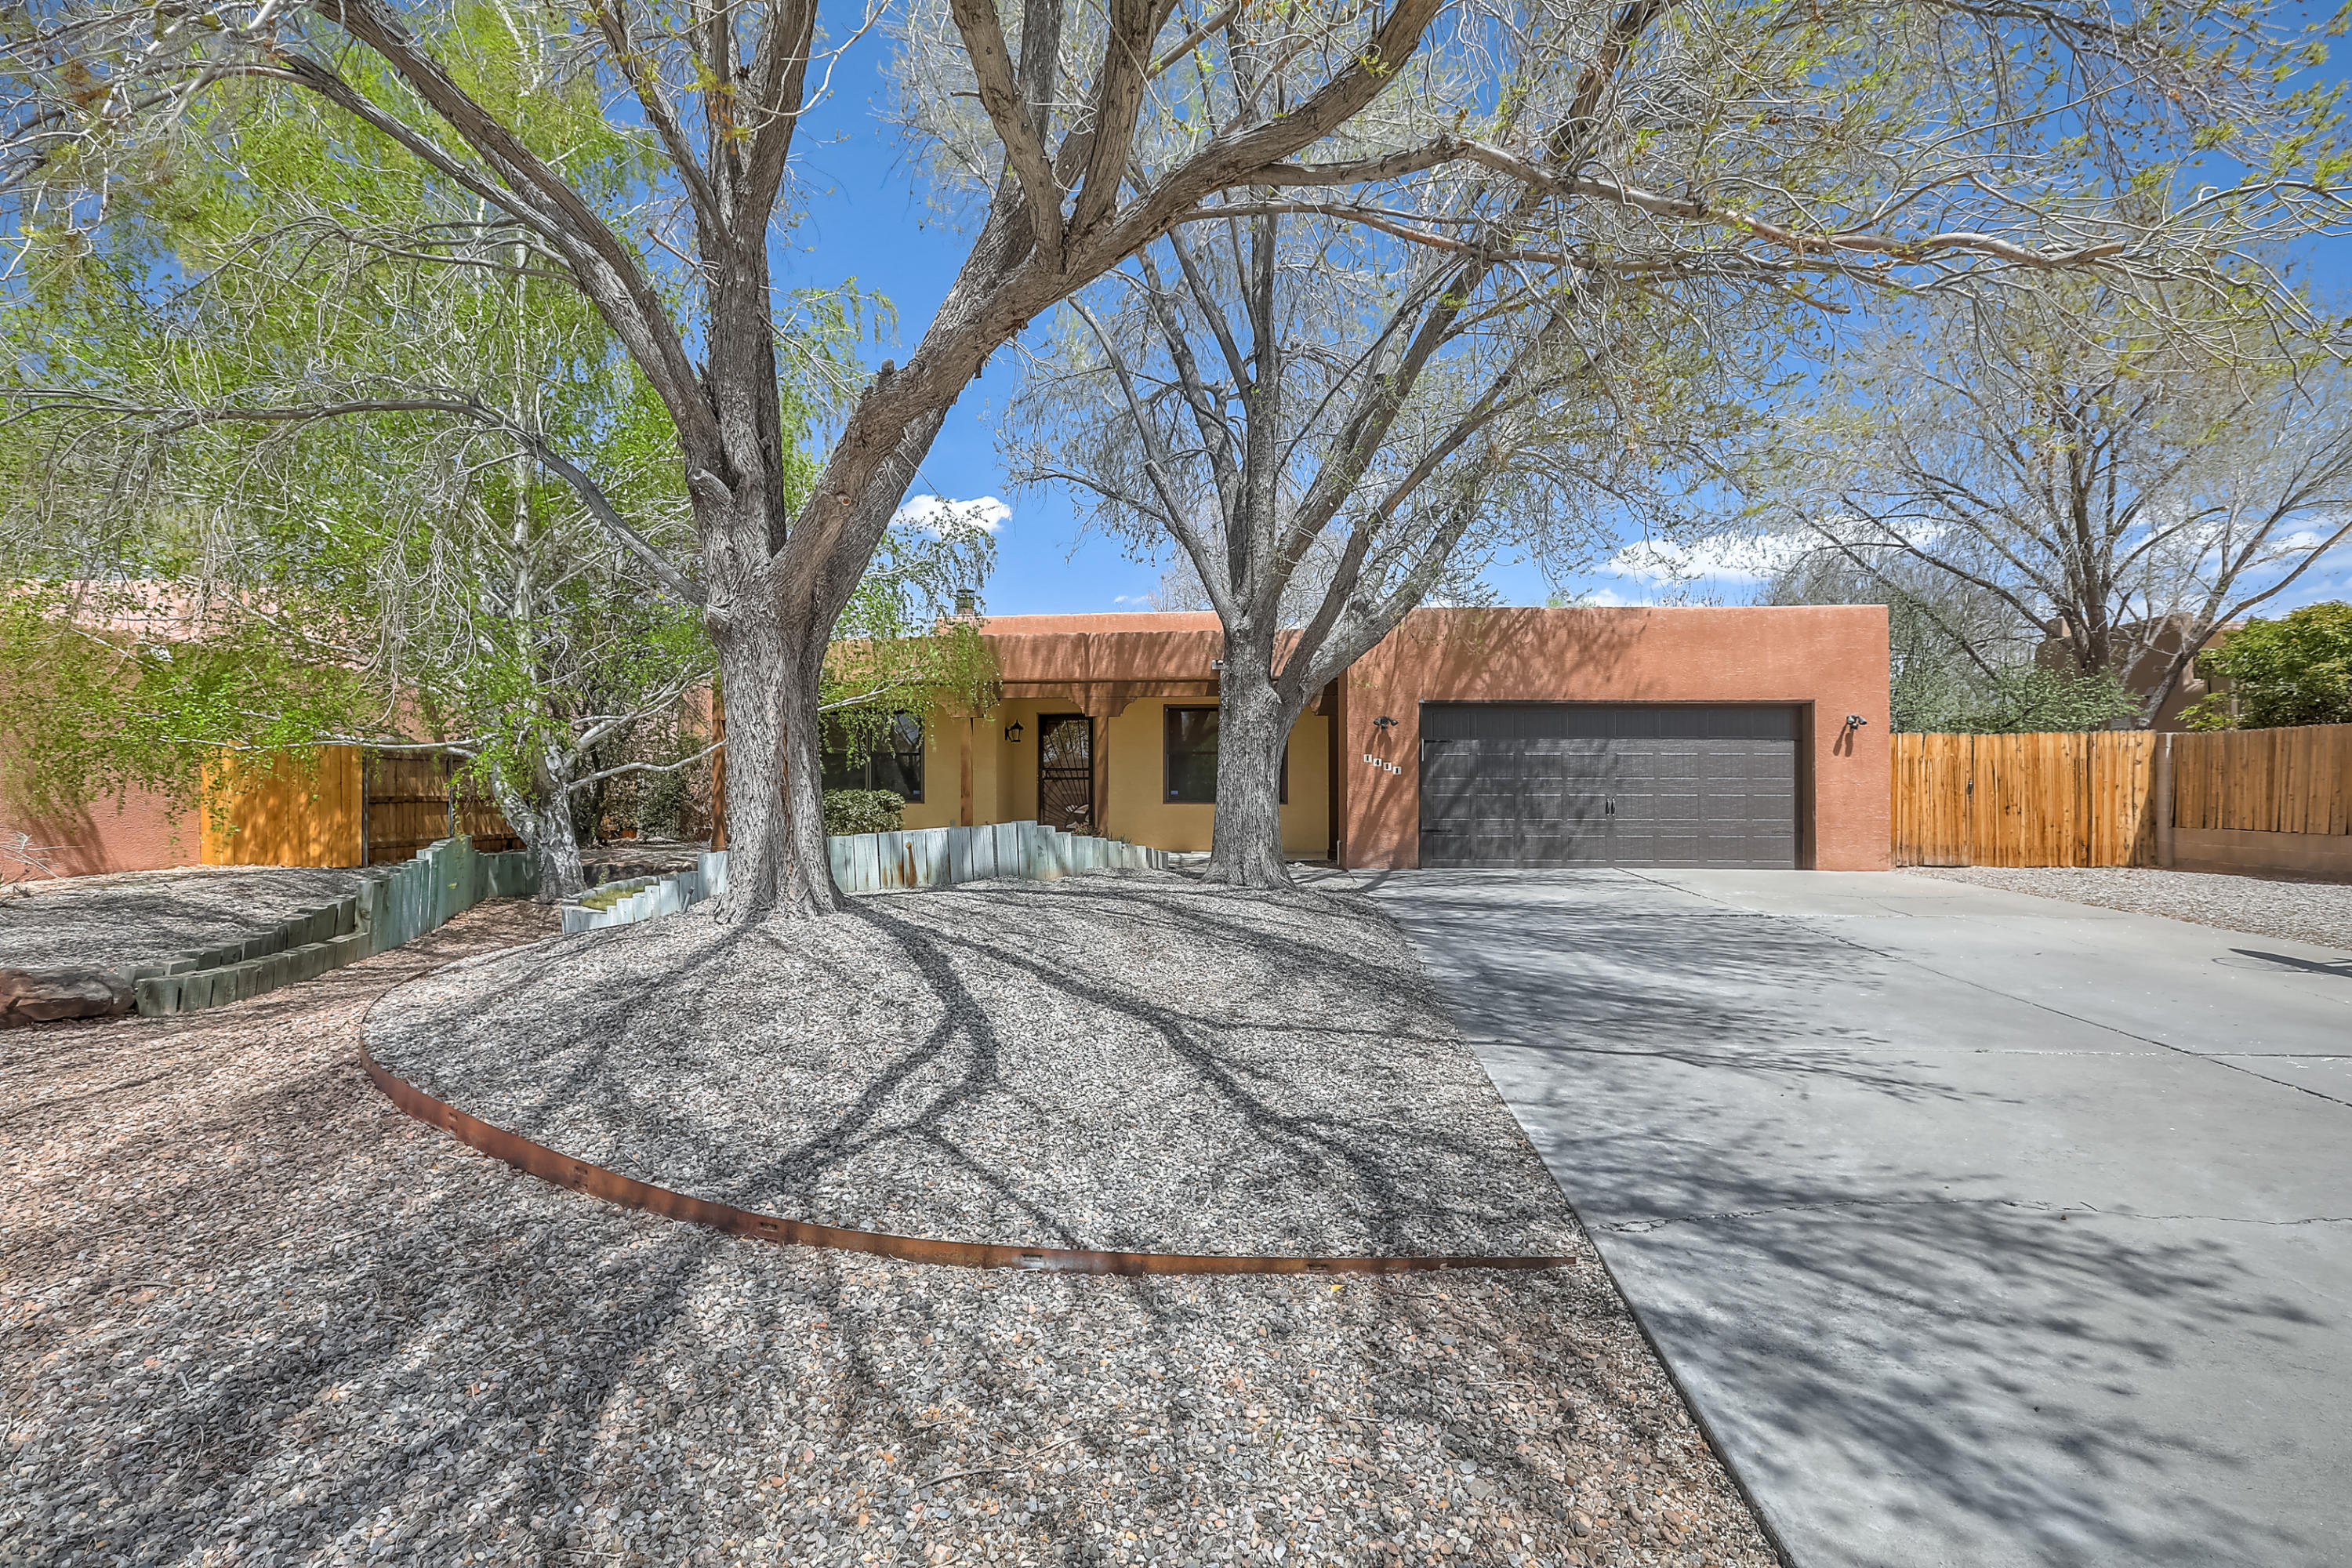 Beautiful Southwest Contemporary home in Matthew Meadows! Open floor plan, skylights, formal living/dining rooms, 4 beds/3.5 baths, including 2nd MBR w/ full bath & gorgeous bay window and separate owner's suite w/ walk-in closet, jetted tub, & adjoining office.  Lovely backyard & patio with mature shade & fruit trees.  New HVAC/furnaces (2020), hot water heater (2018), & garage door/motor (2018). Located in the heart of North Valley  with many nearby amenities, this home is an Albuquerque oasis.